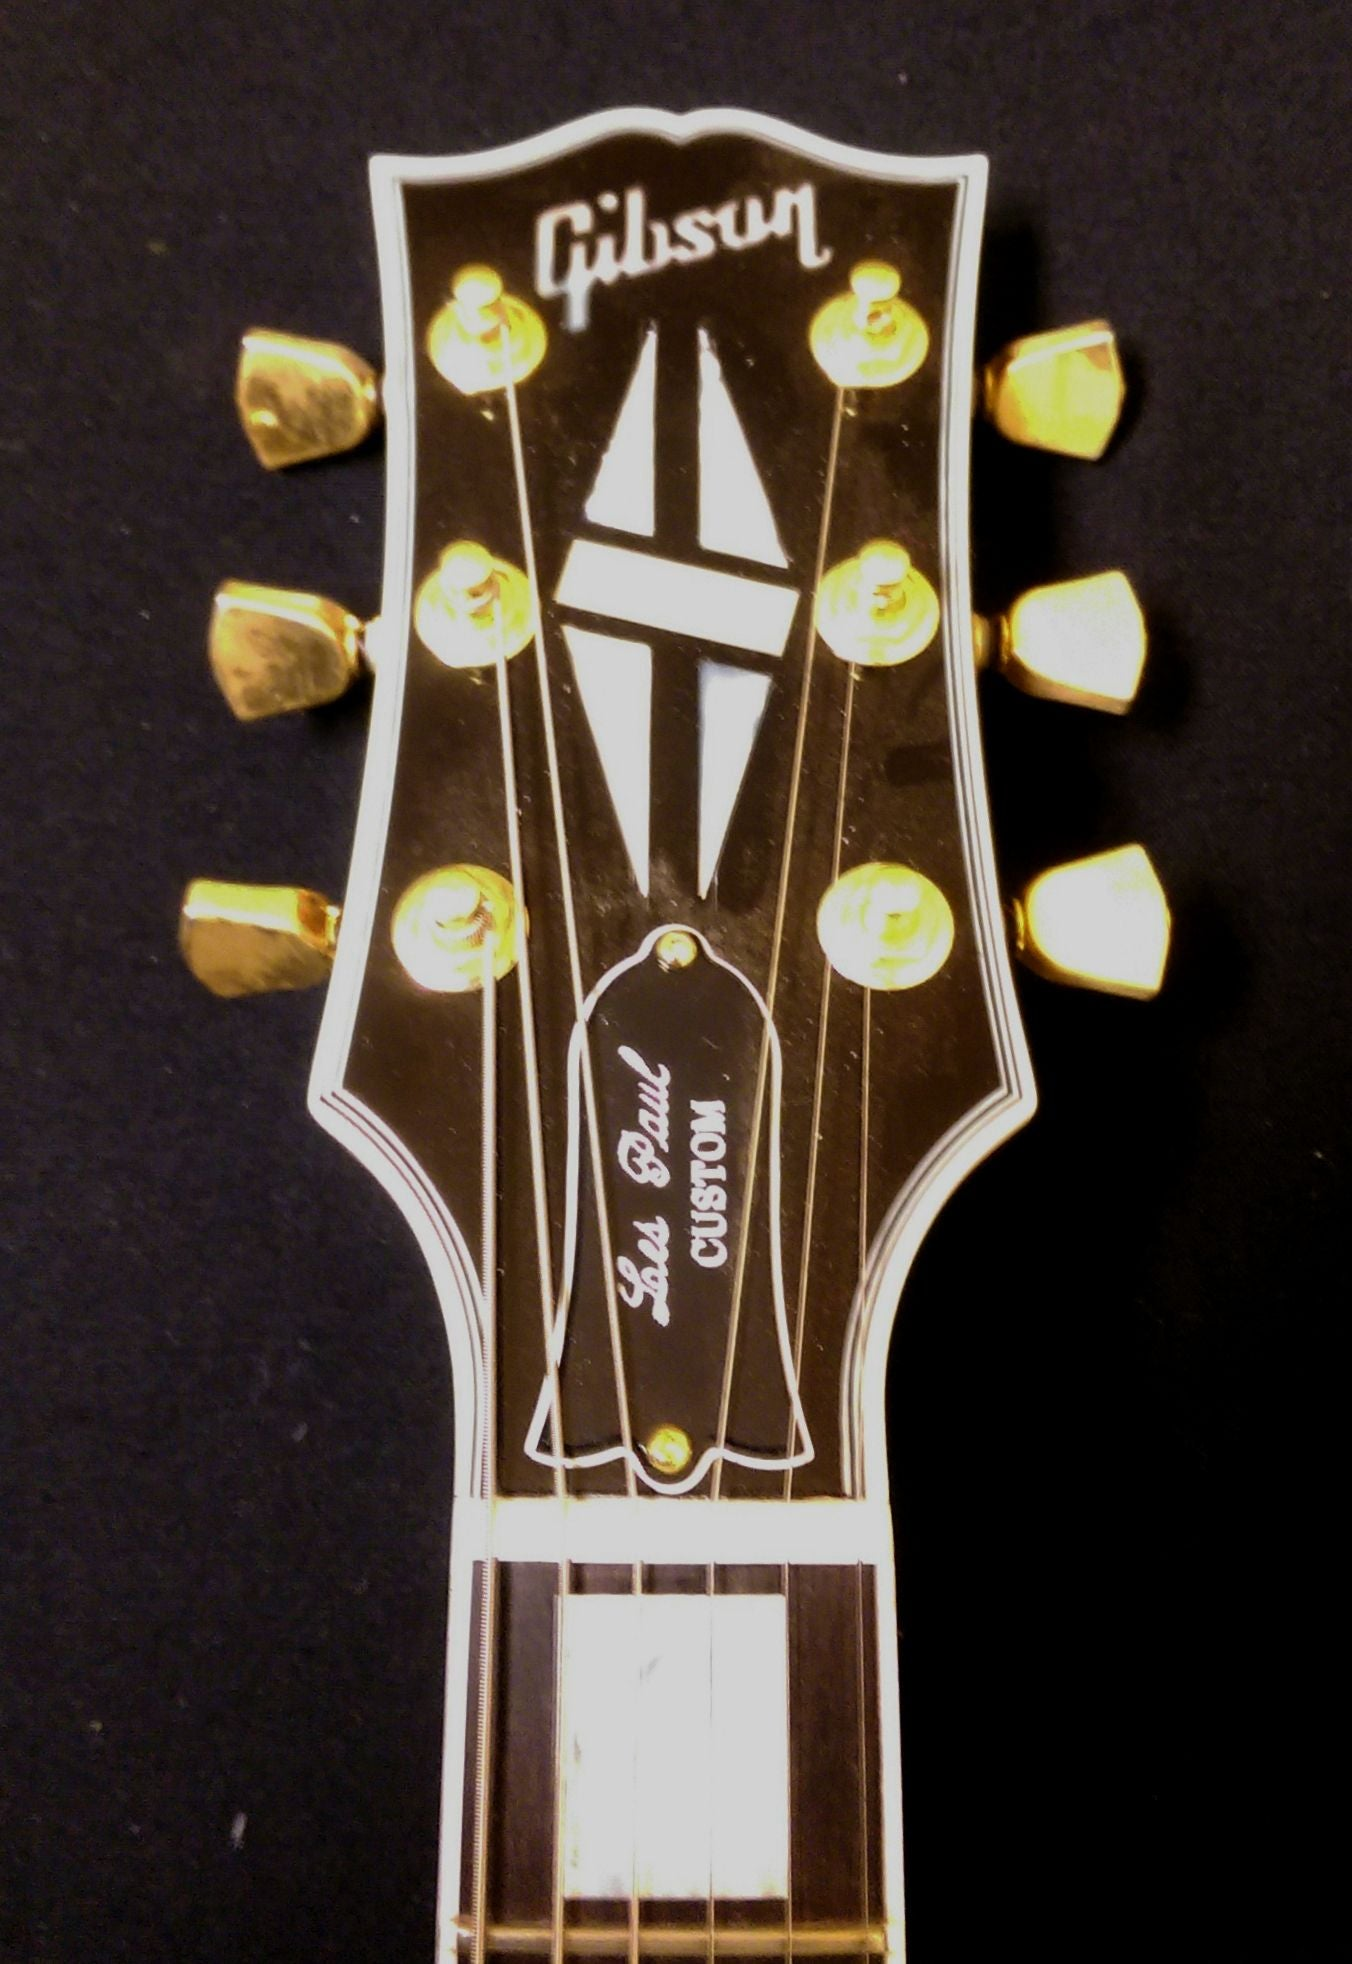 Gibson Les Paul Custm 3 Pickup Jimmy Wallace Guitars Classic 3pickup Electric Guitar With Case